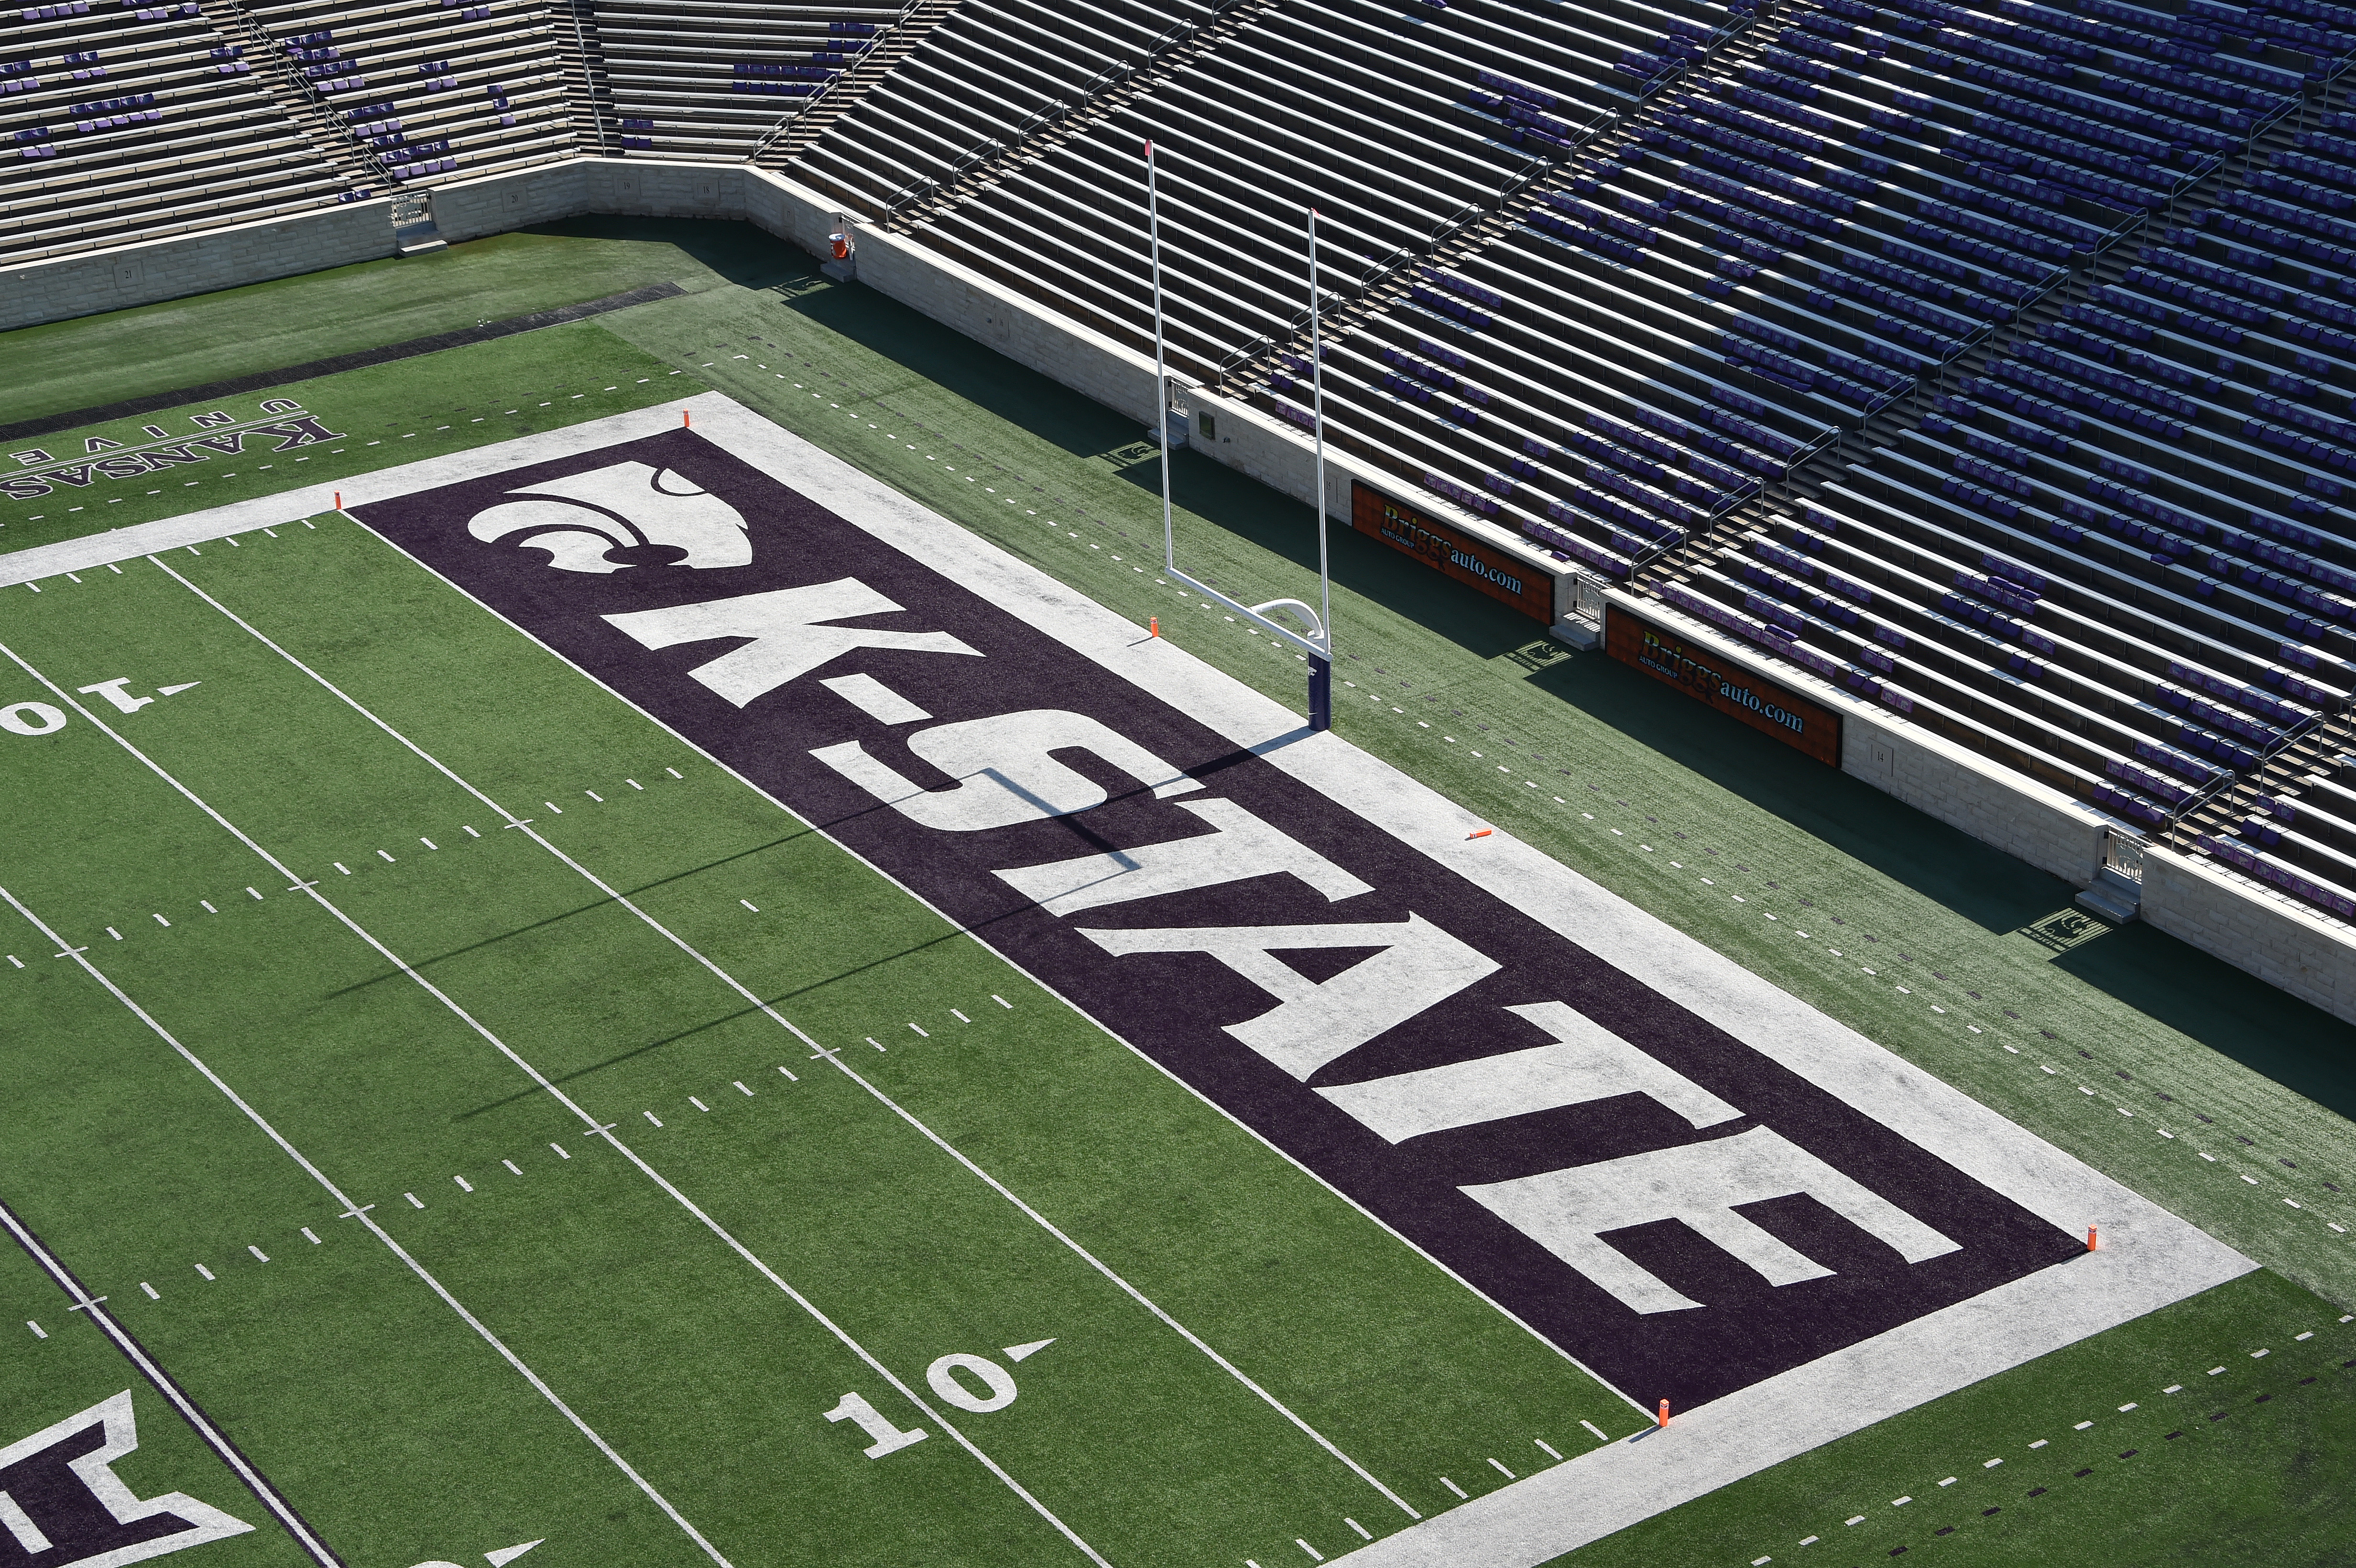 A general view of the end zone at the Bill Snyder Family Football Stadium on Nov. 16, 2019 in Manhattan, Kansas.